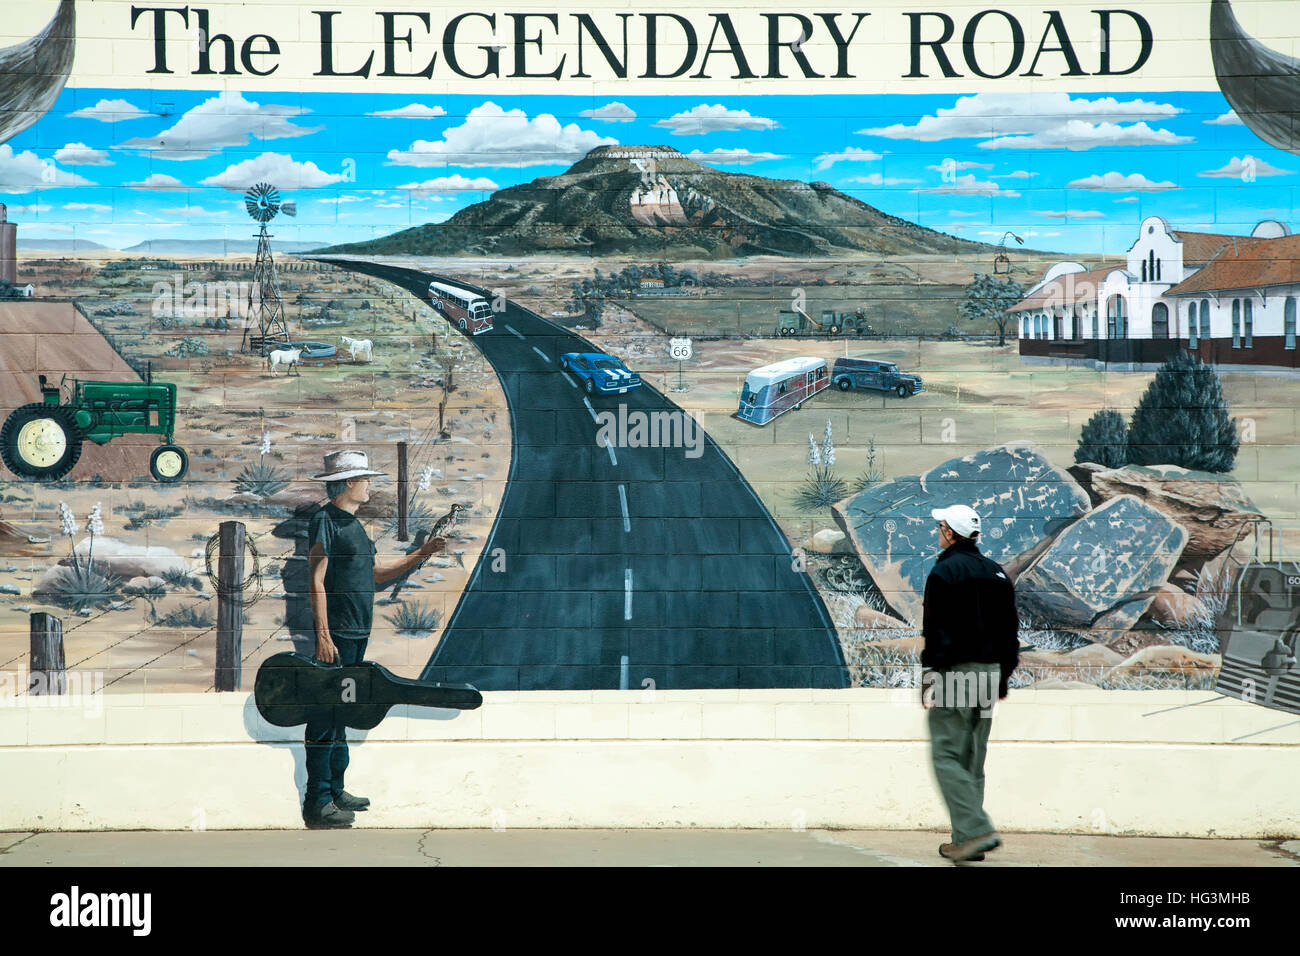 Man and Route 66 mural (by Doug and Sharon Quarles), Route 66, Tucumcari, New Mexico USA - Stock Image